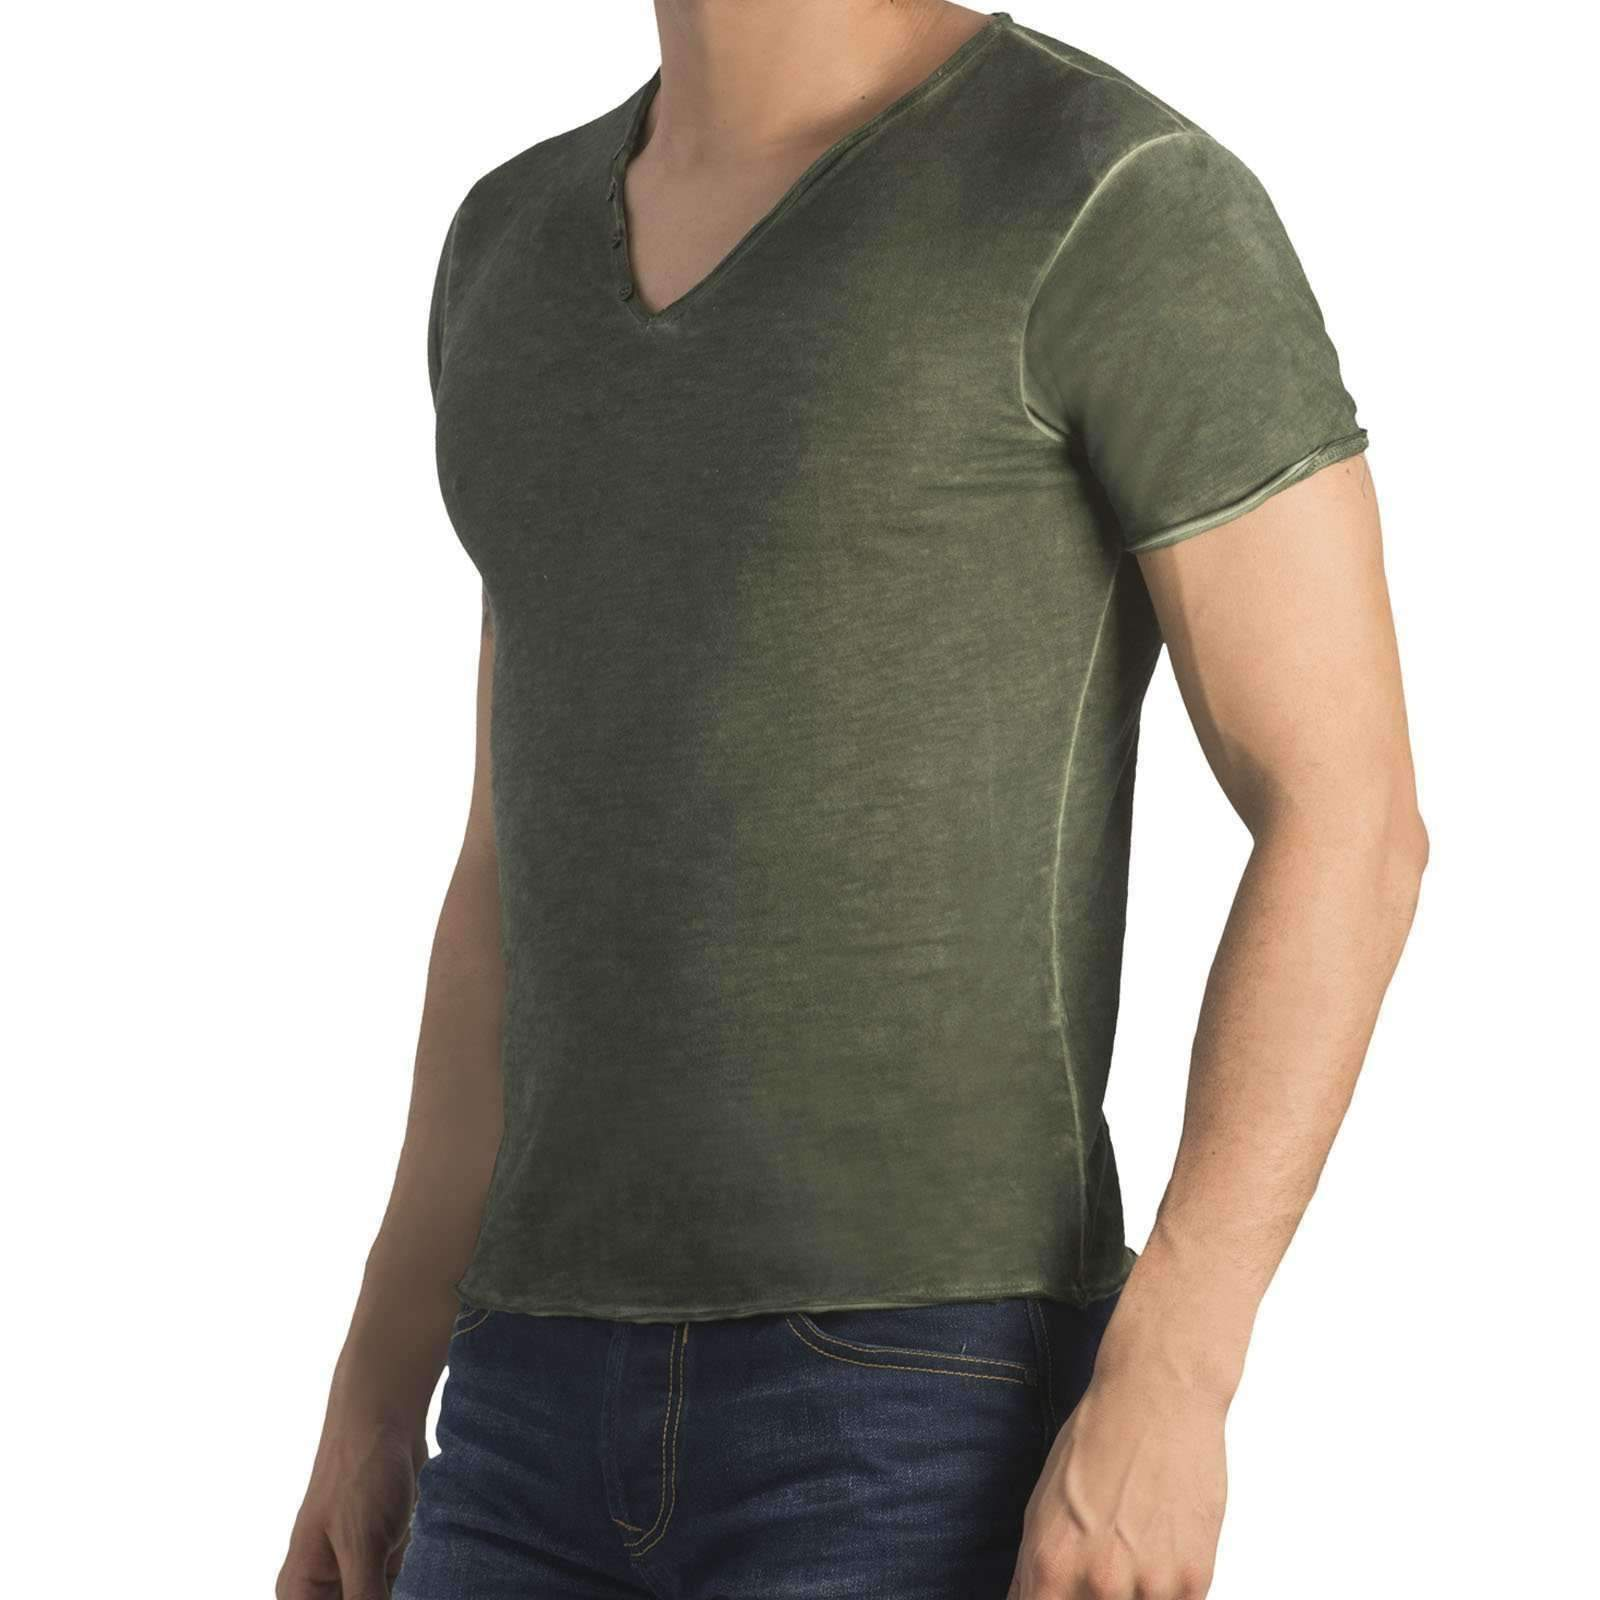 Camiseta degrade verde militar